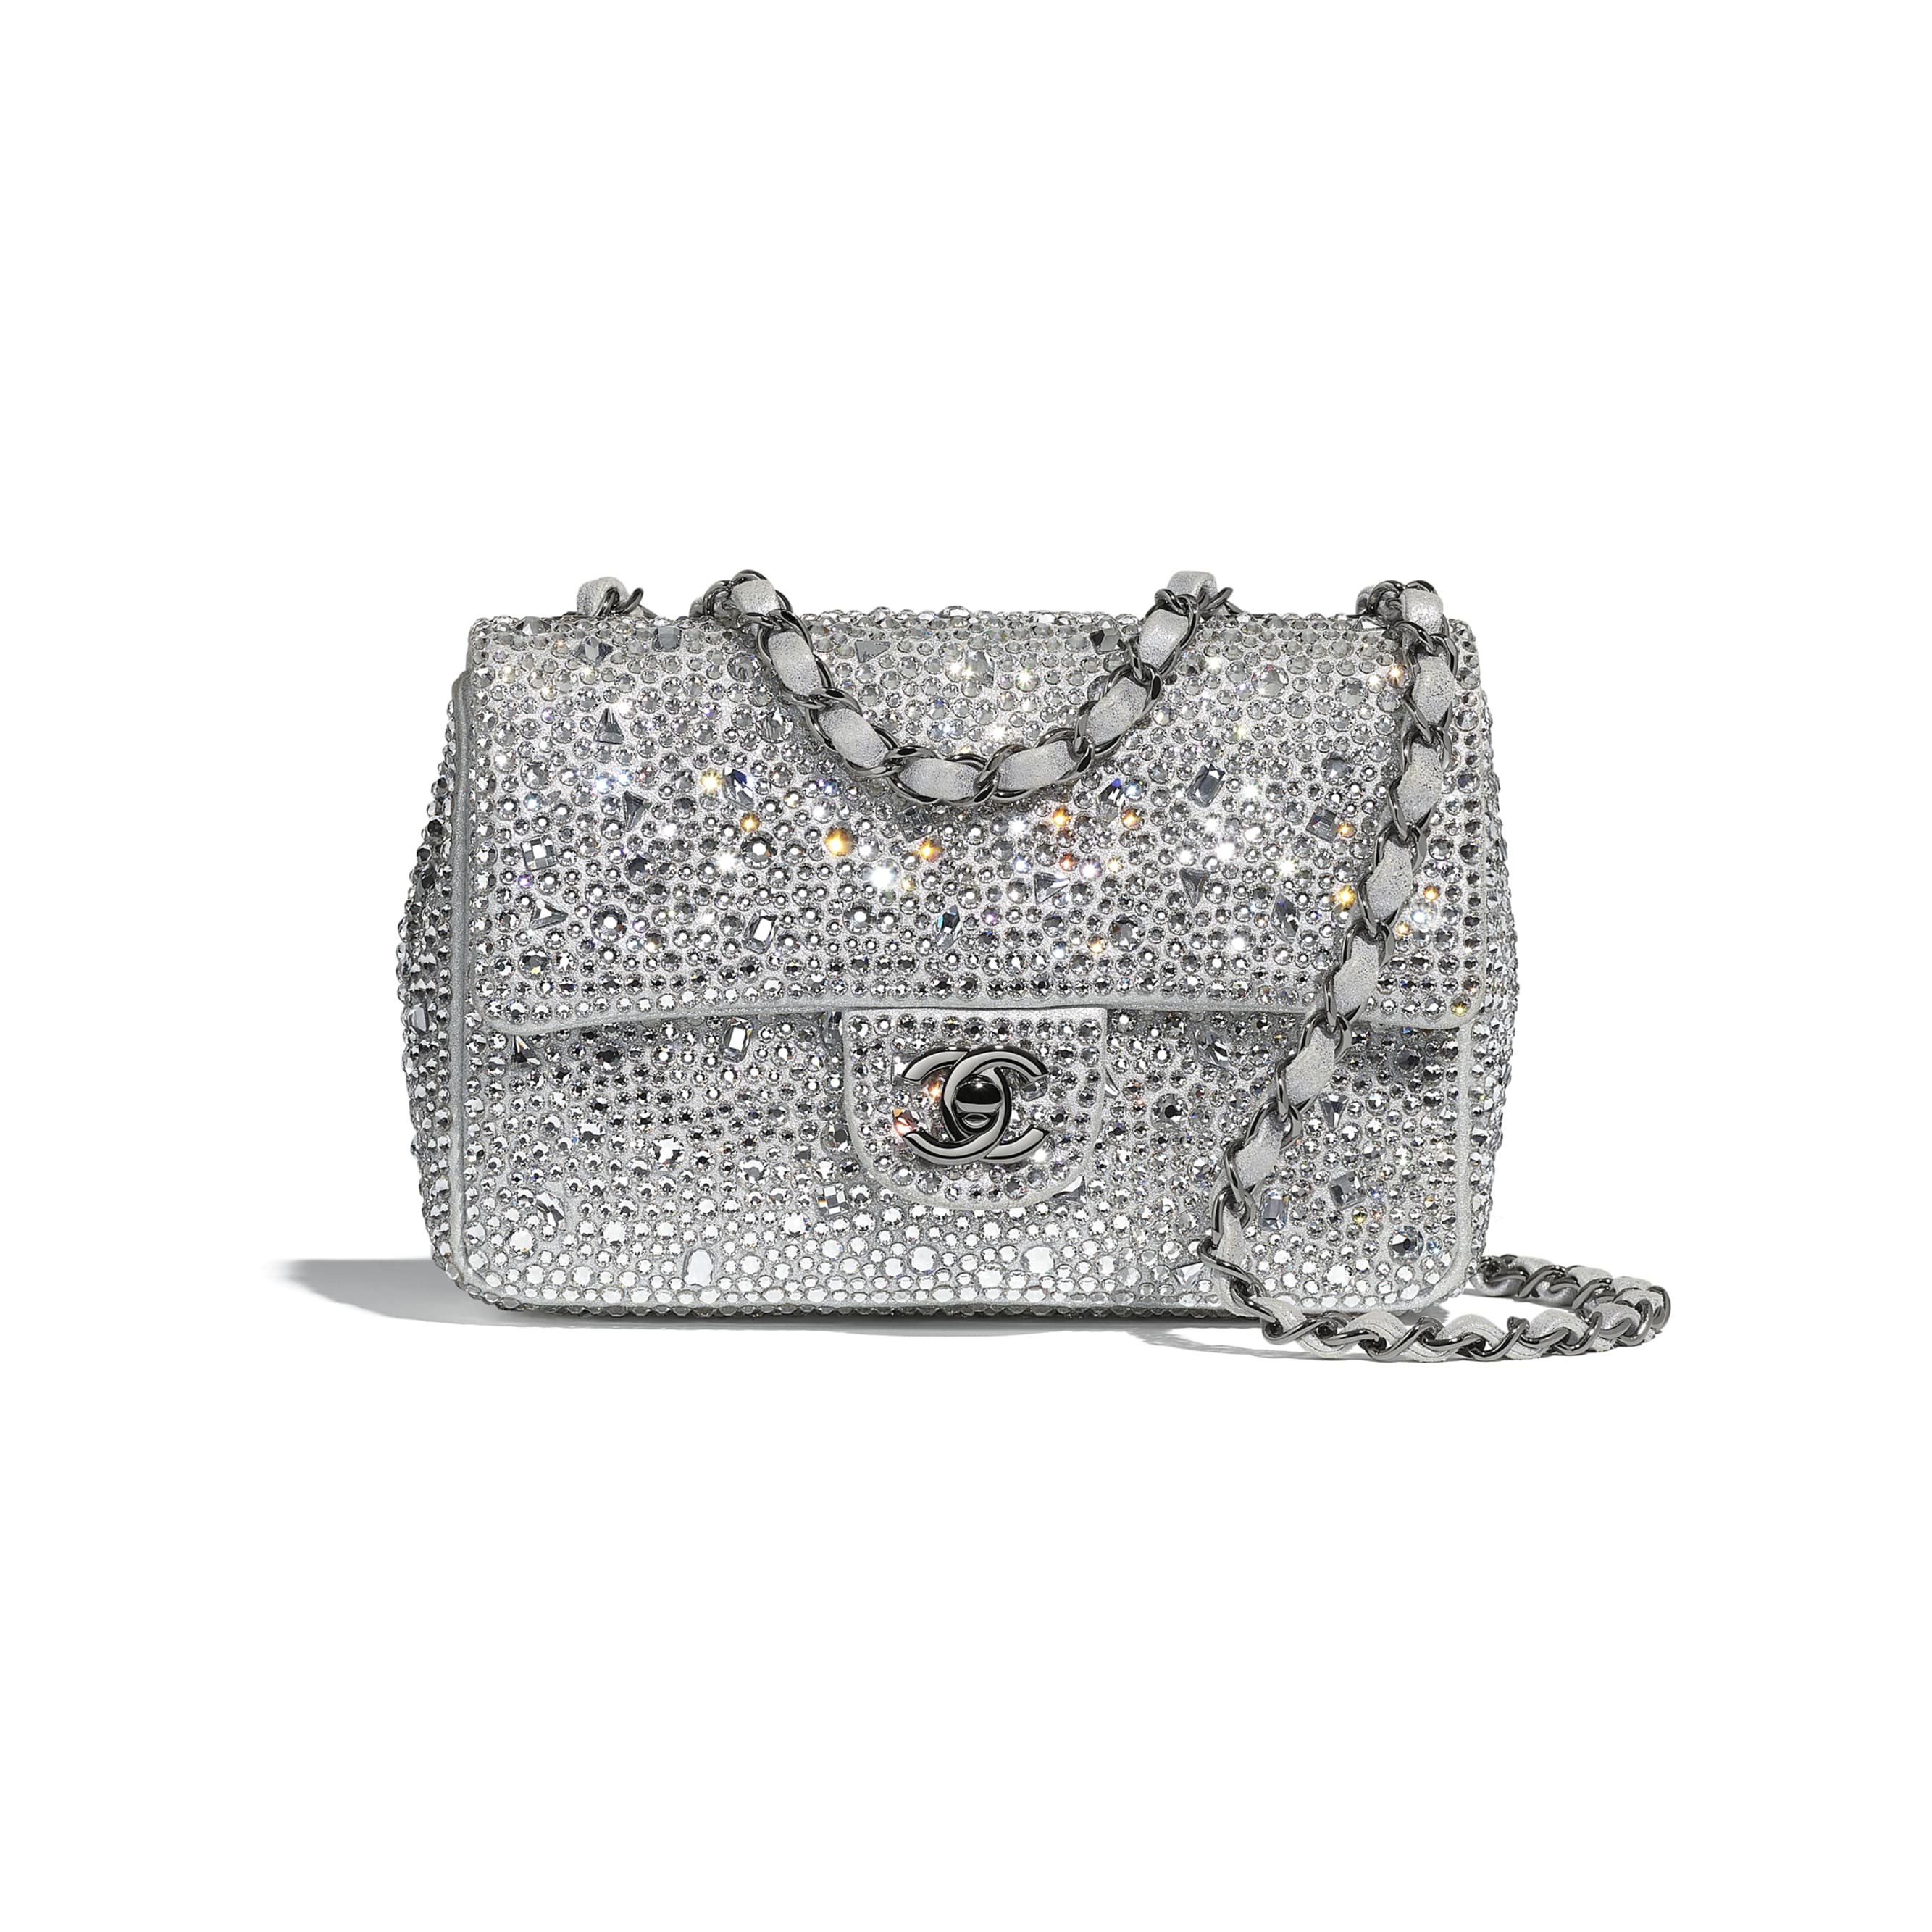 Flap Bag - Silver - Strass, Lambskin & Ruthenium-Finish Metal - CHANEL - Default view - see standard sized version